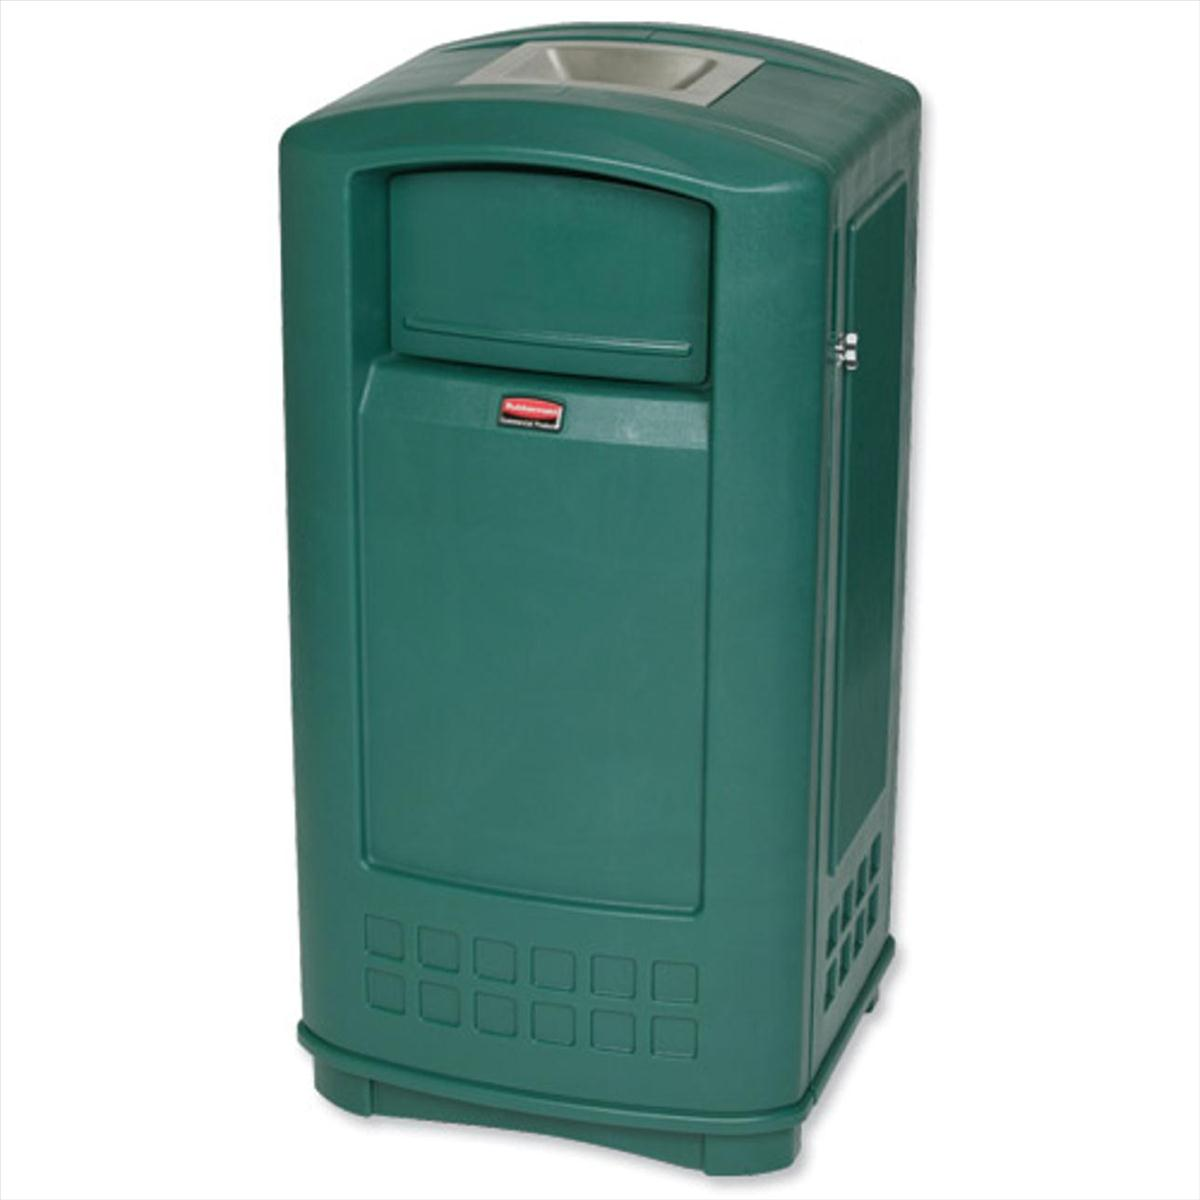 Image for Rubbermaid Landmark Bin Durable Plastic with Ashtray Spring-loaded Doors 189.1 Litre Green Ref 3965-58